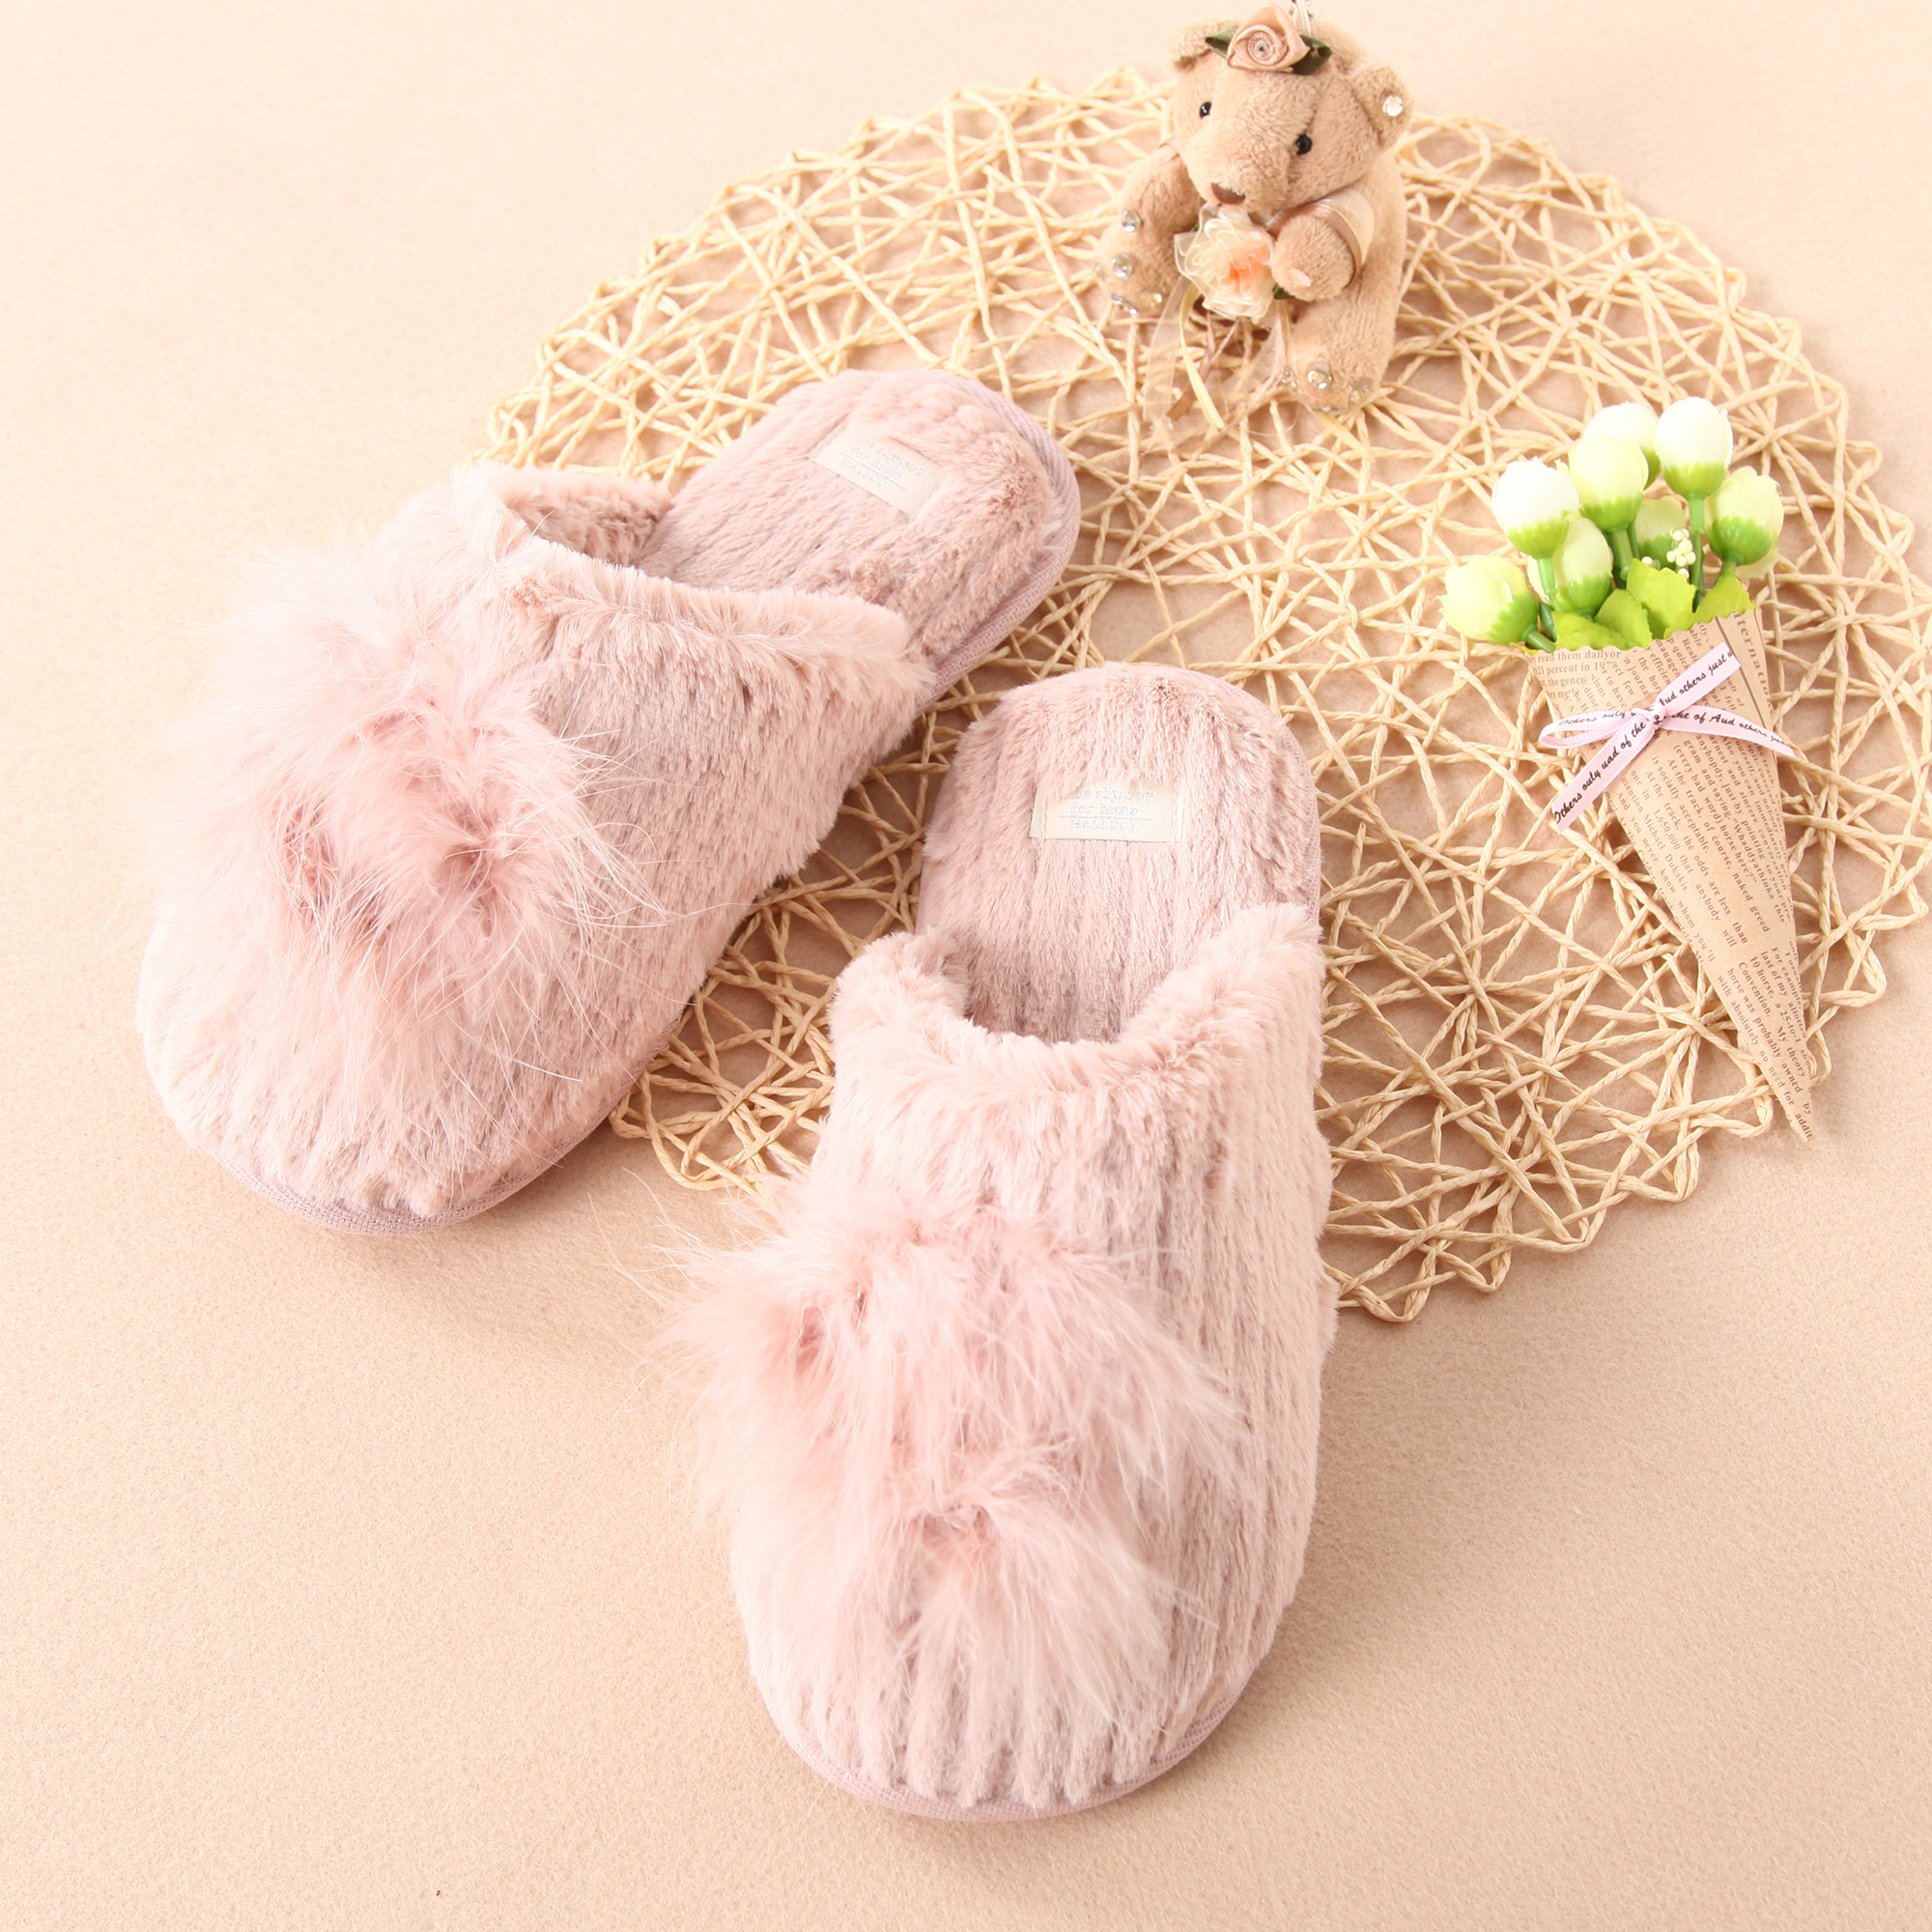 Plush Slippers on Memory Foam House Slippers